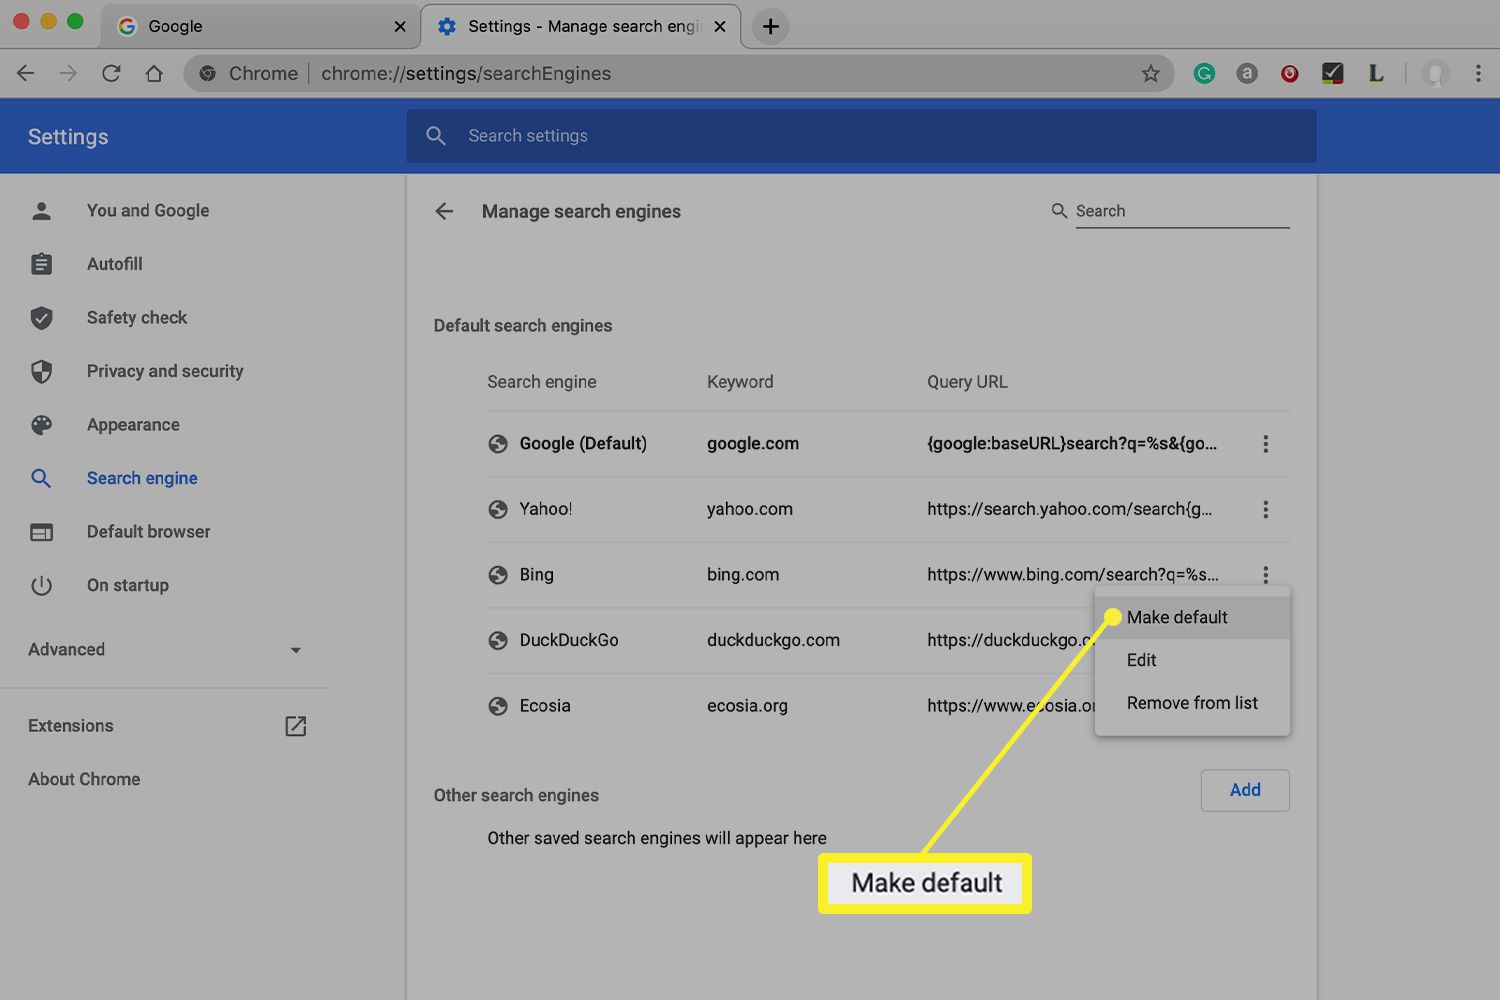 default search engine options in Chrome